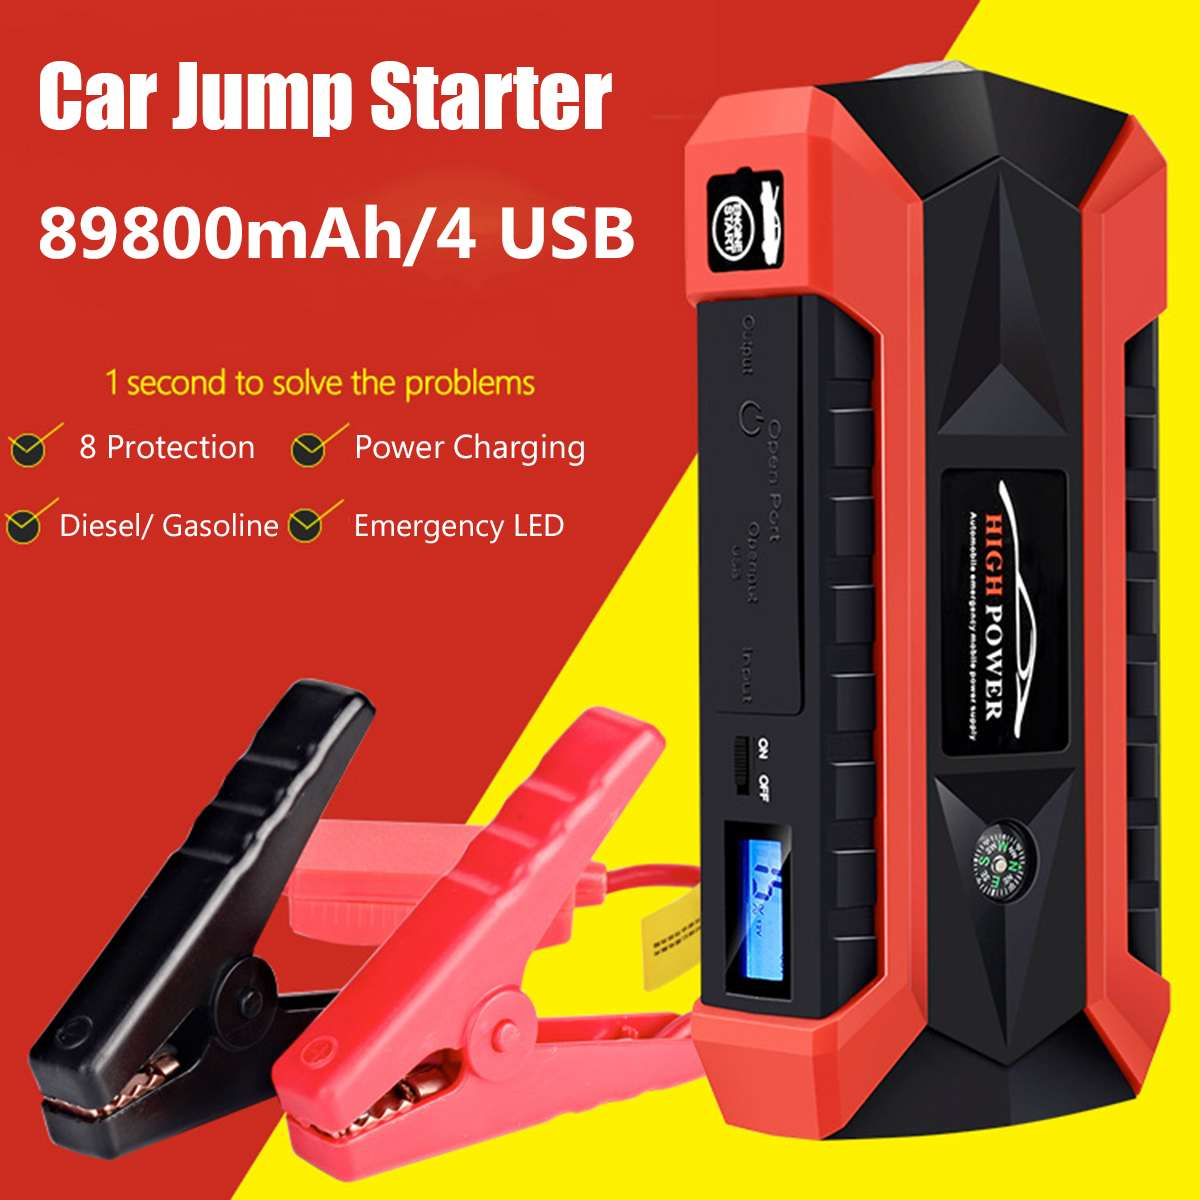 89800mAh 4USB 12V 600A LED Car Jump Starter Portable Emergency Charger Battery Power Bank Car Booster Starting Device Waterproof89800mAh 4USB 12V 600A LED Car Jump Starter Portable Emergency Charger Battery Power Bank Car Booster Starting Device Waterproof